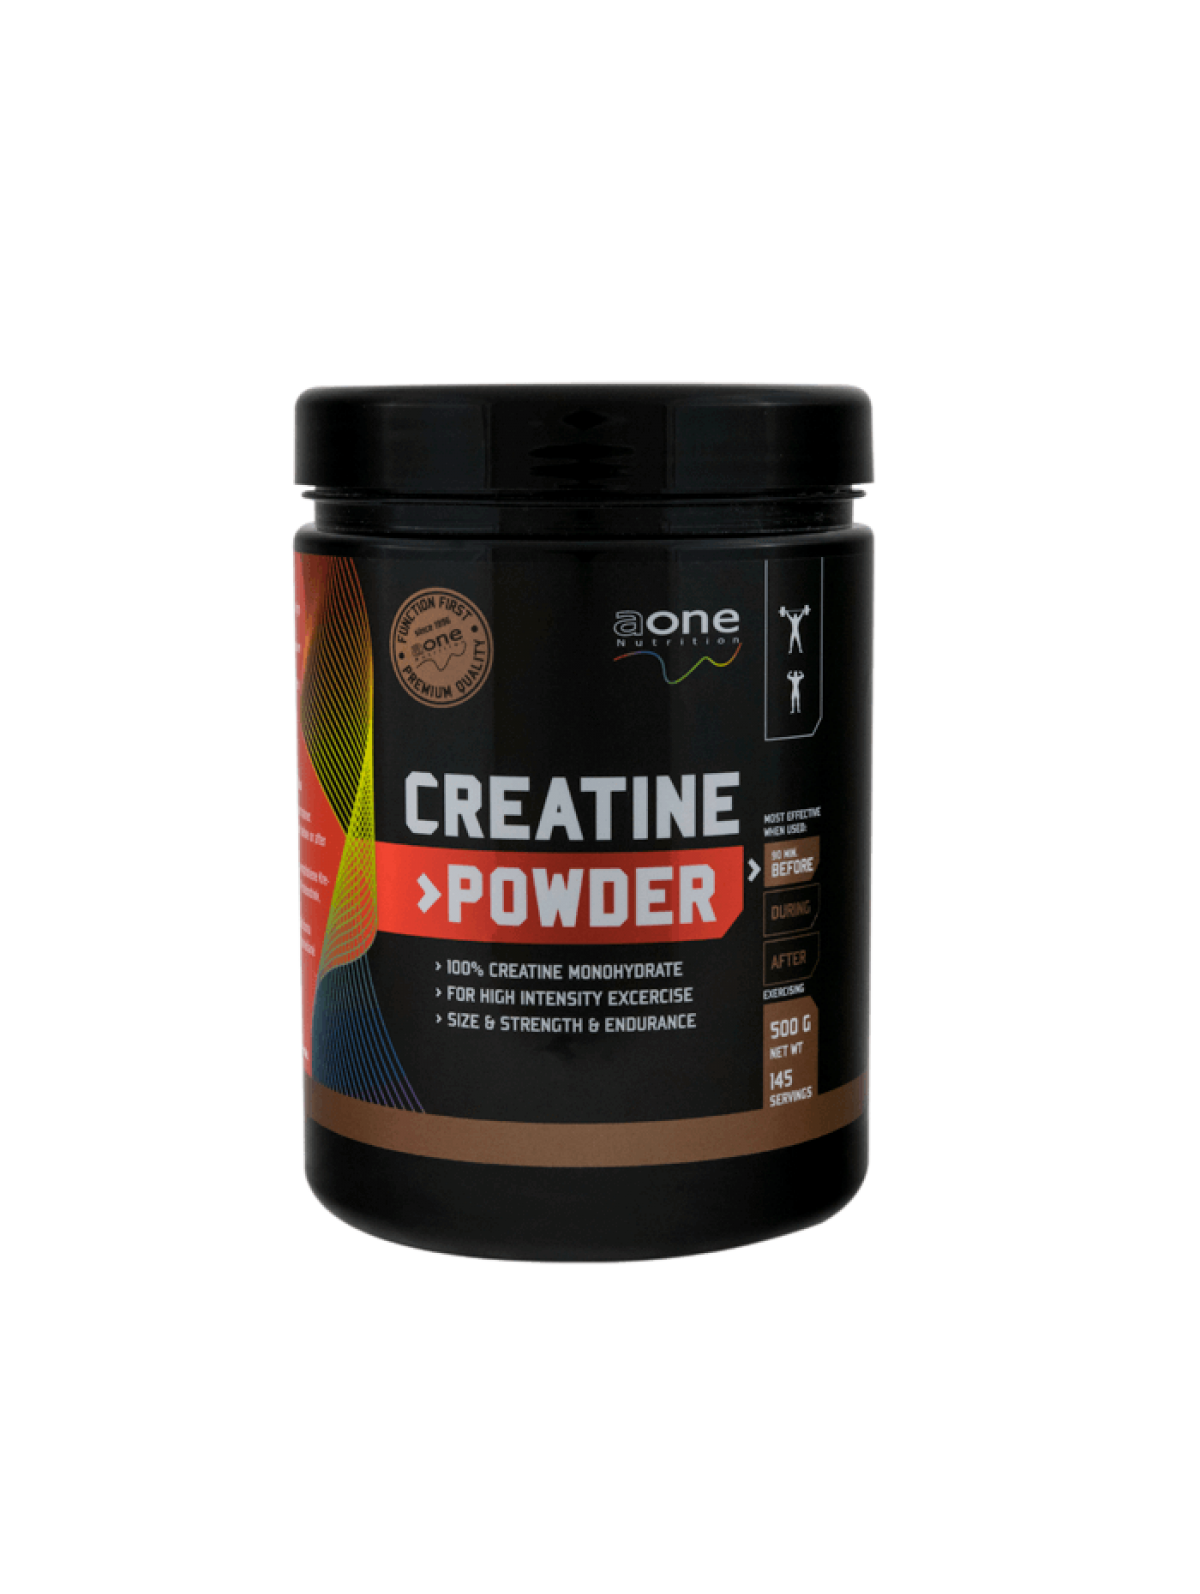 100% Creatine Monohydrate 500g - AONE NUTRITION